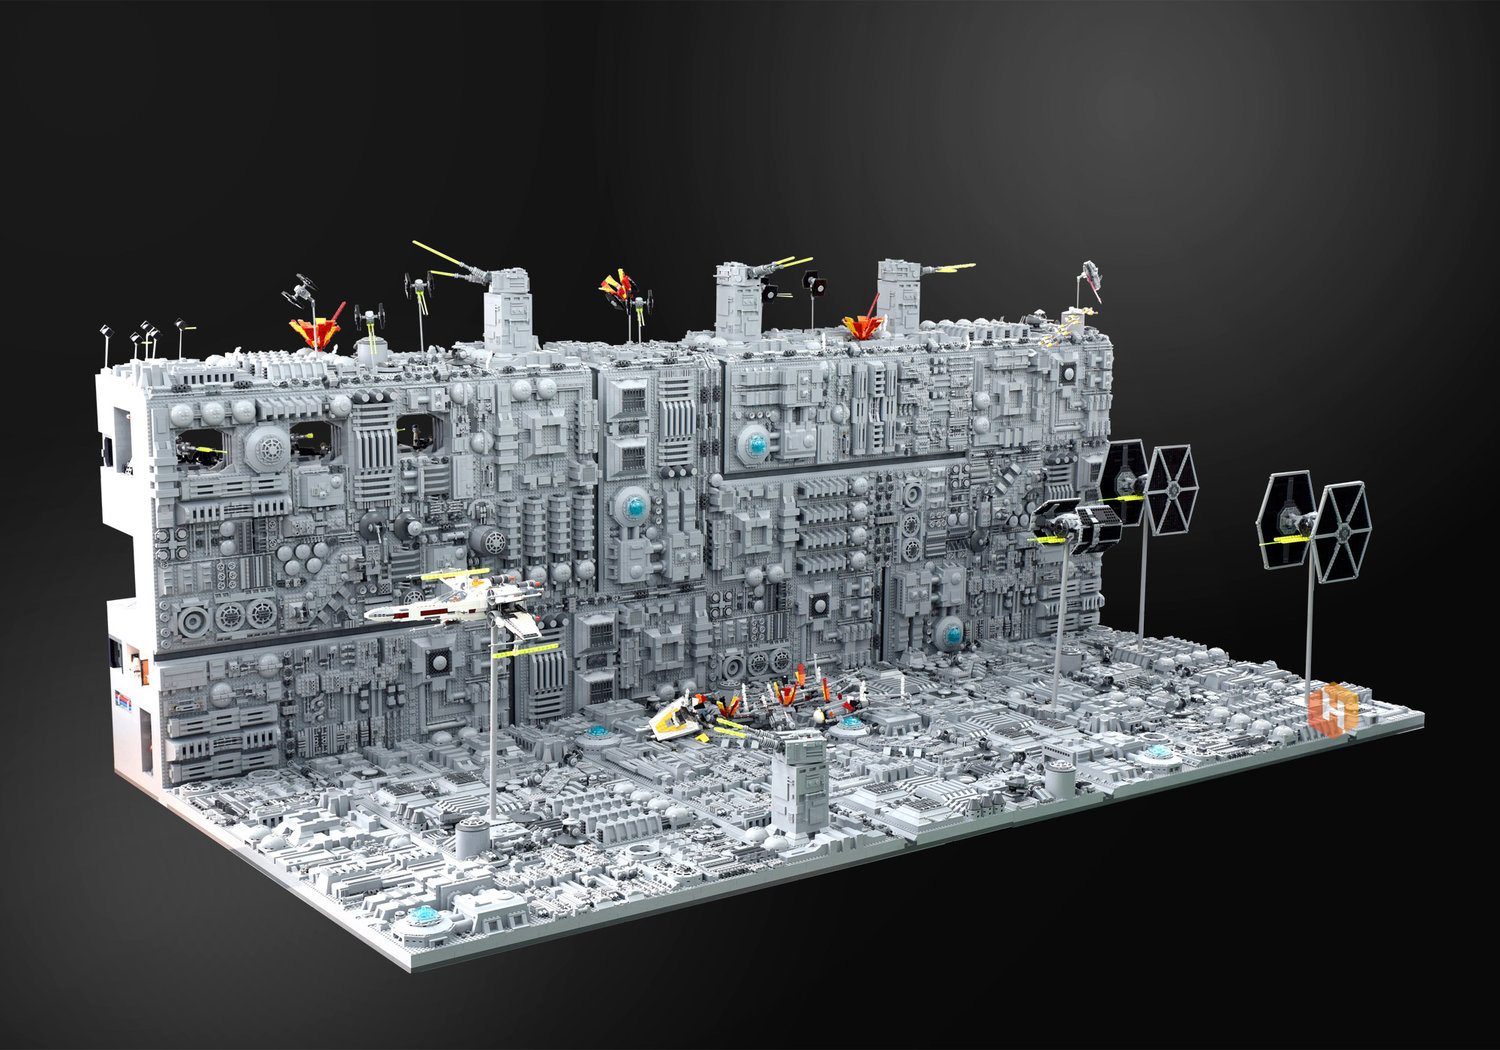 super-detailed-lego-diorama-of-the-star-wars-death-star-trench-run-stays-on-target5